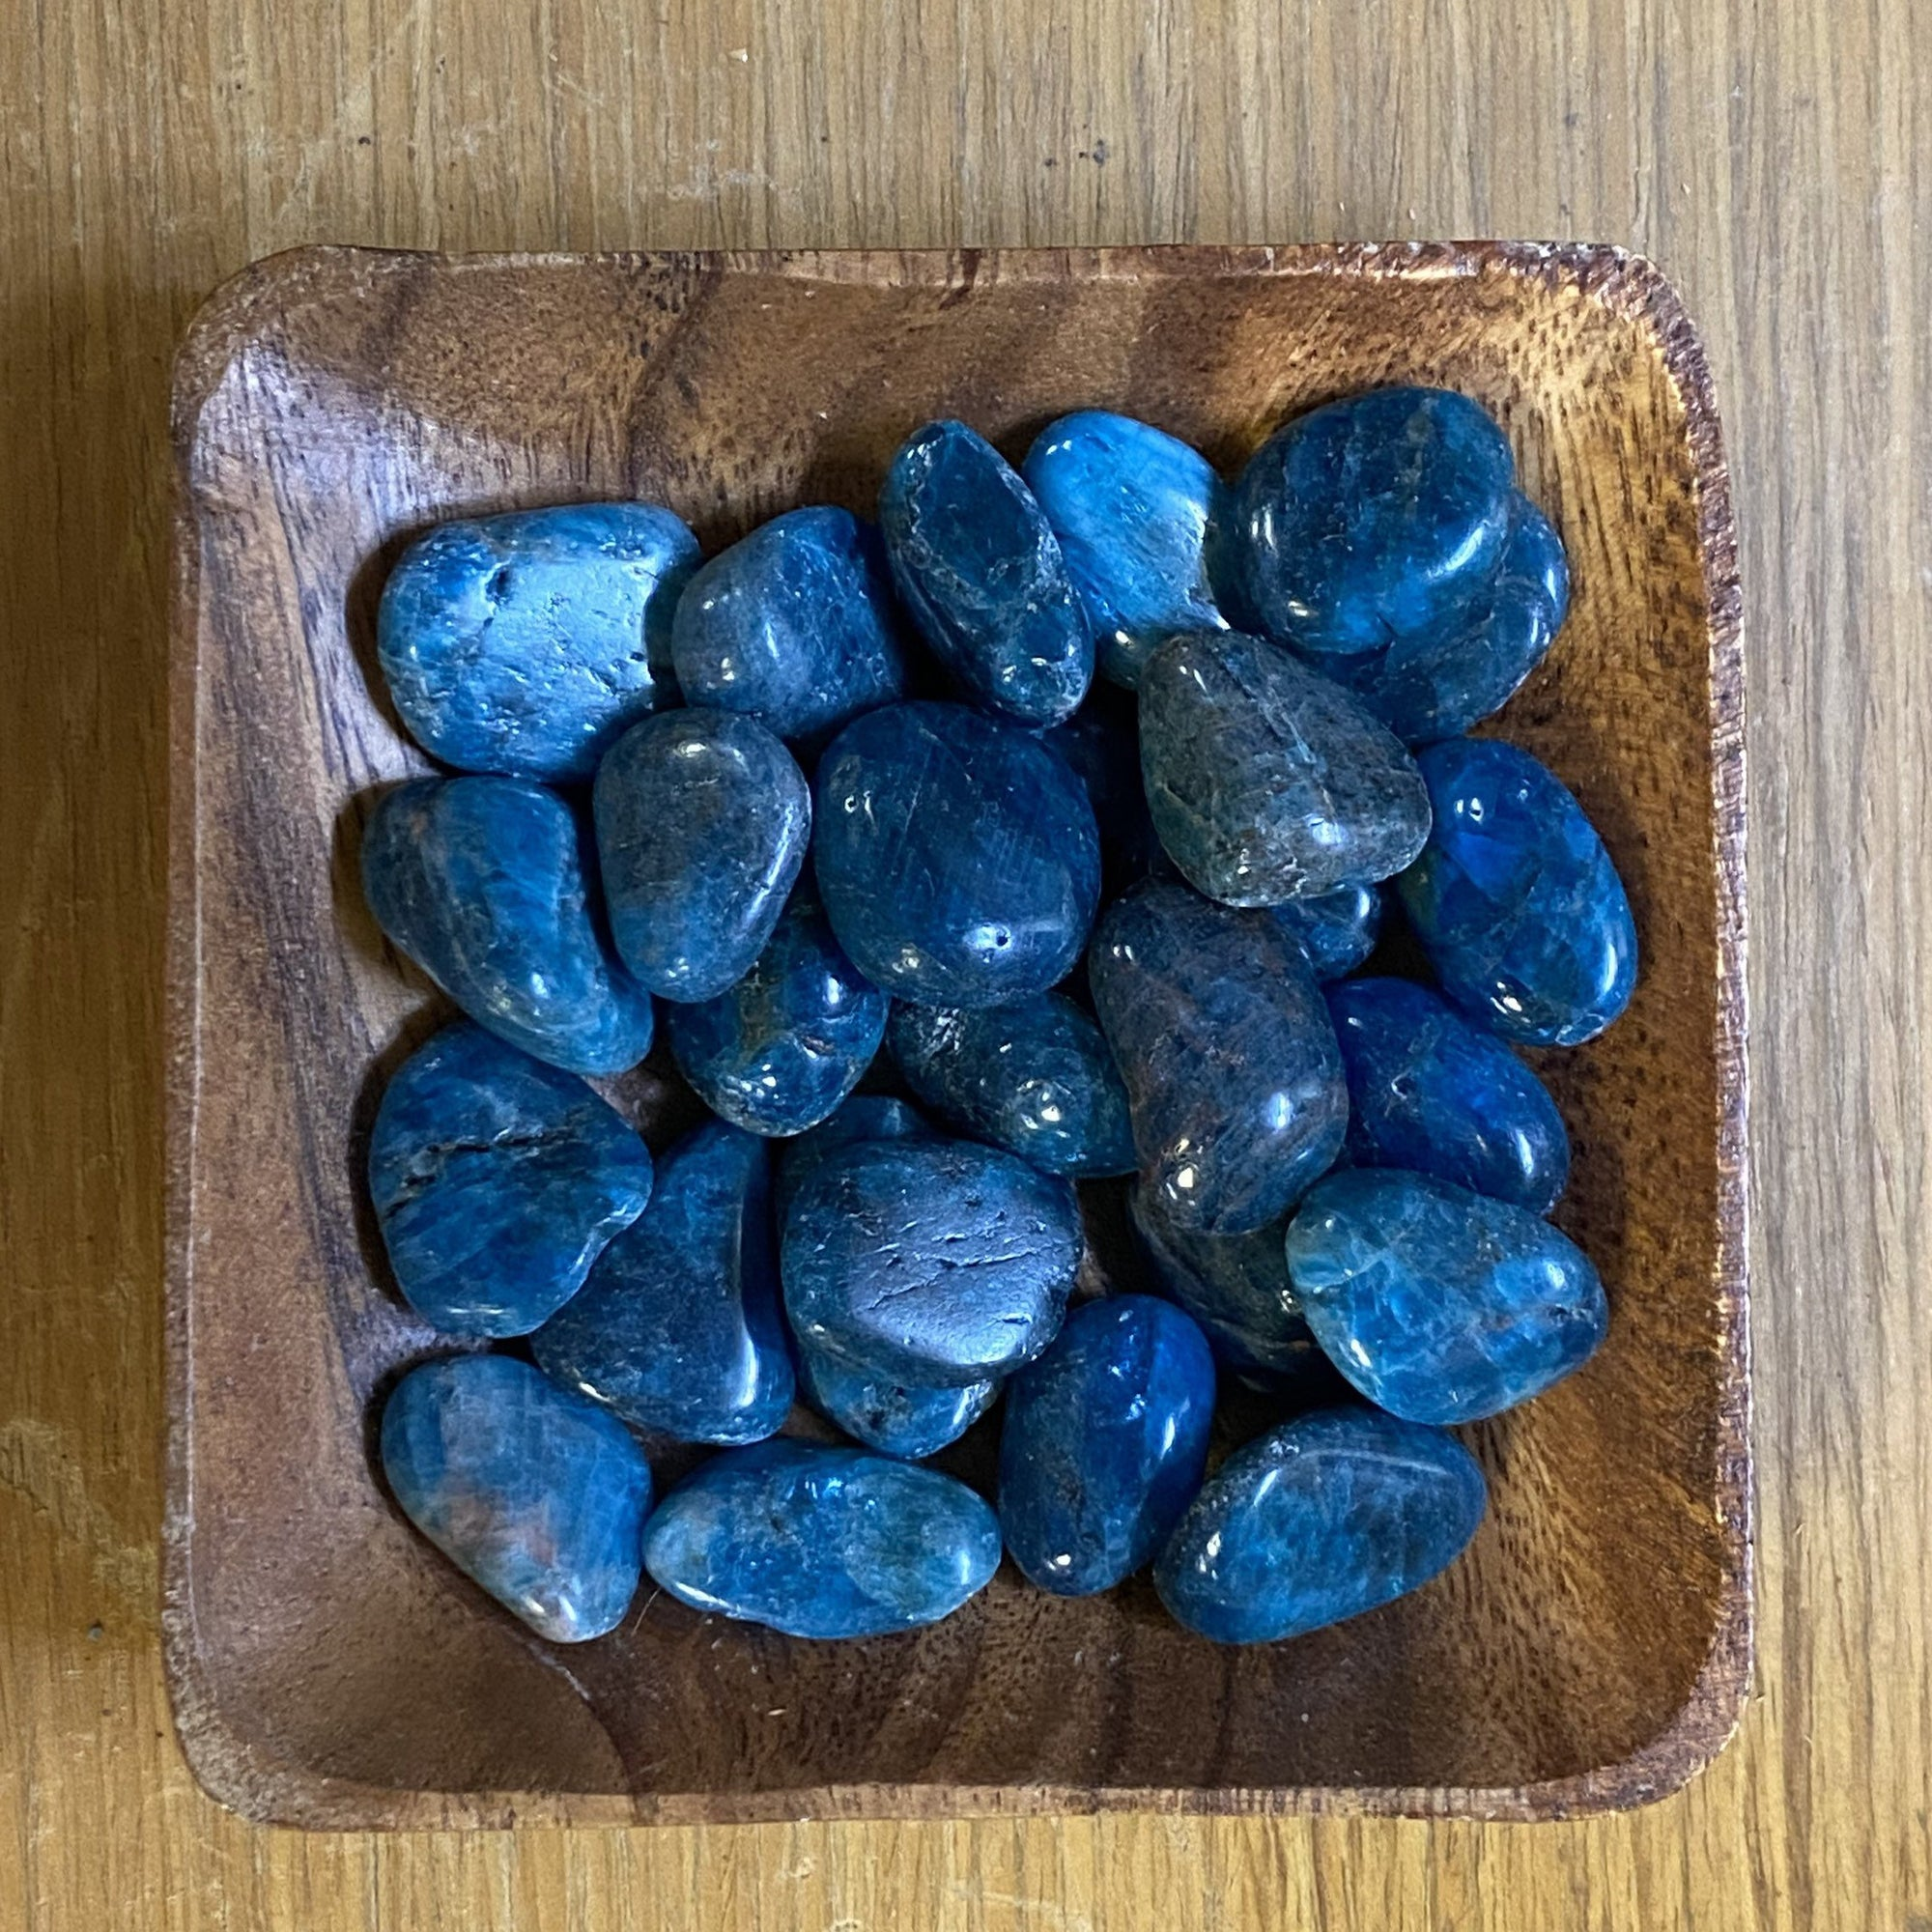 One small Apatite Tumbled Stone